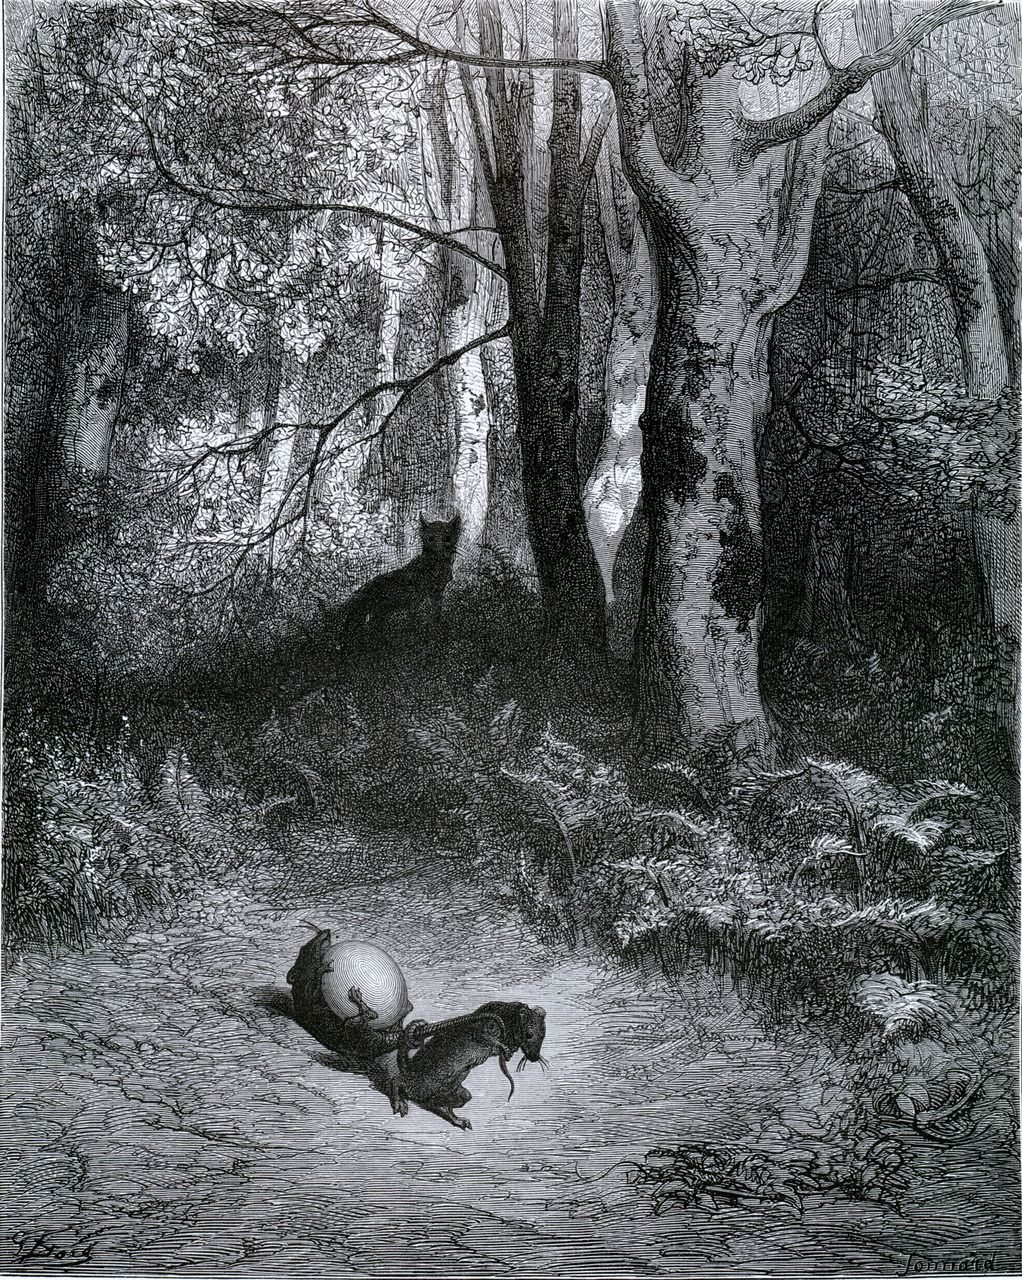 Gustave Doré. Two Rats, the Fox, and the Egg, 1867. From Doré's Illustrations for the Fables of La Fontaine.